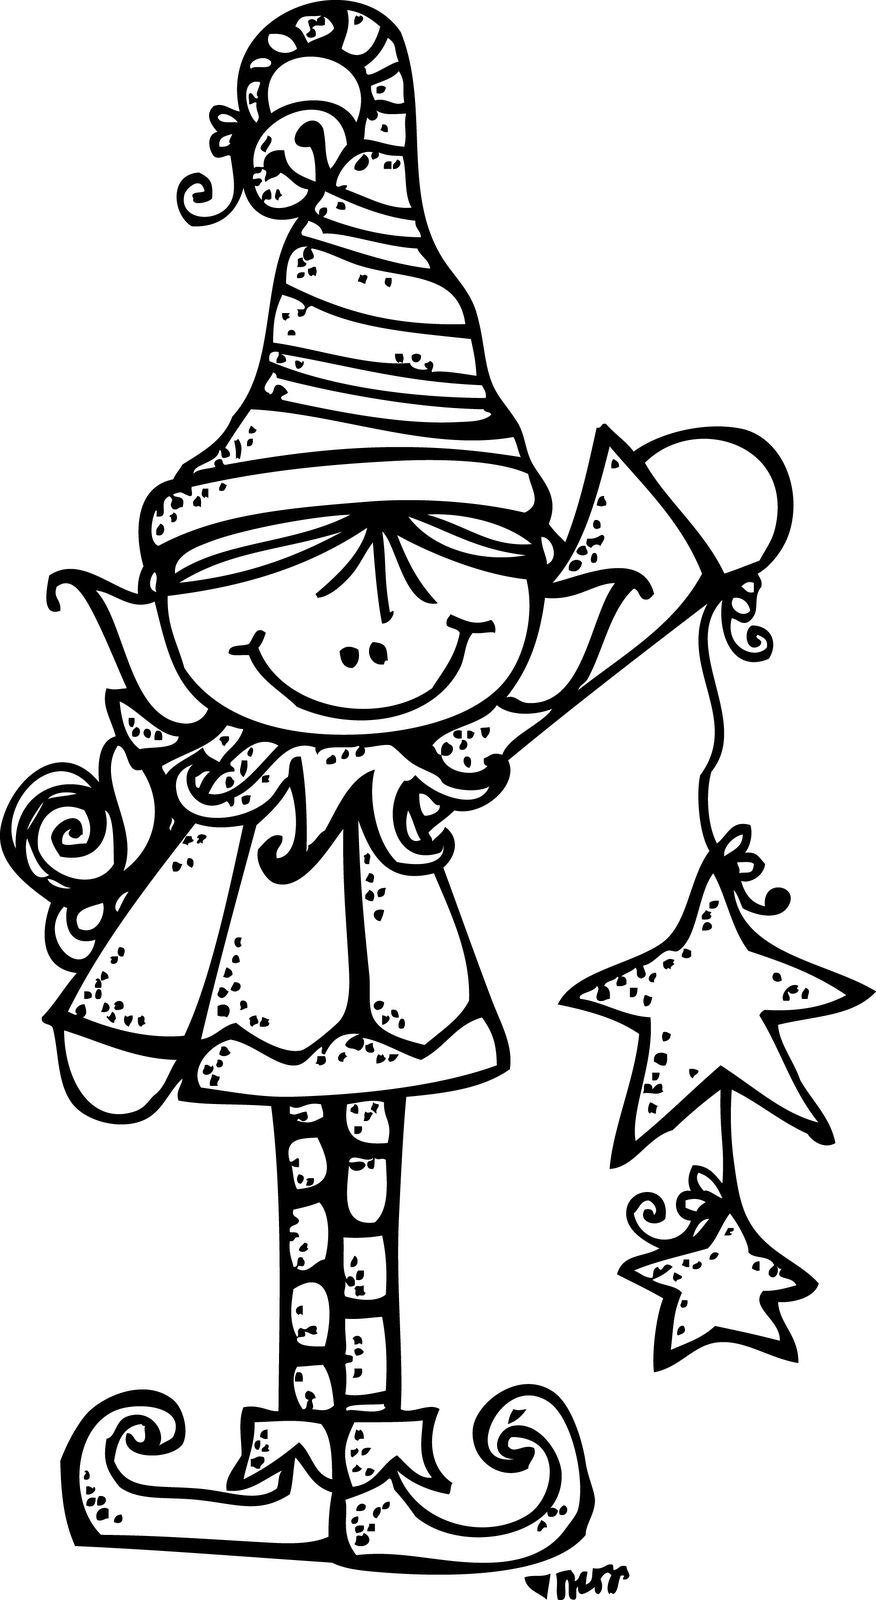 Elves clipart outline, Elves outline Transparent FREE for